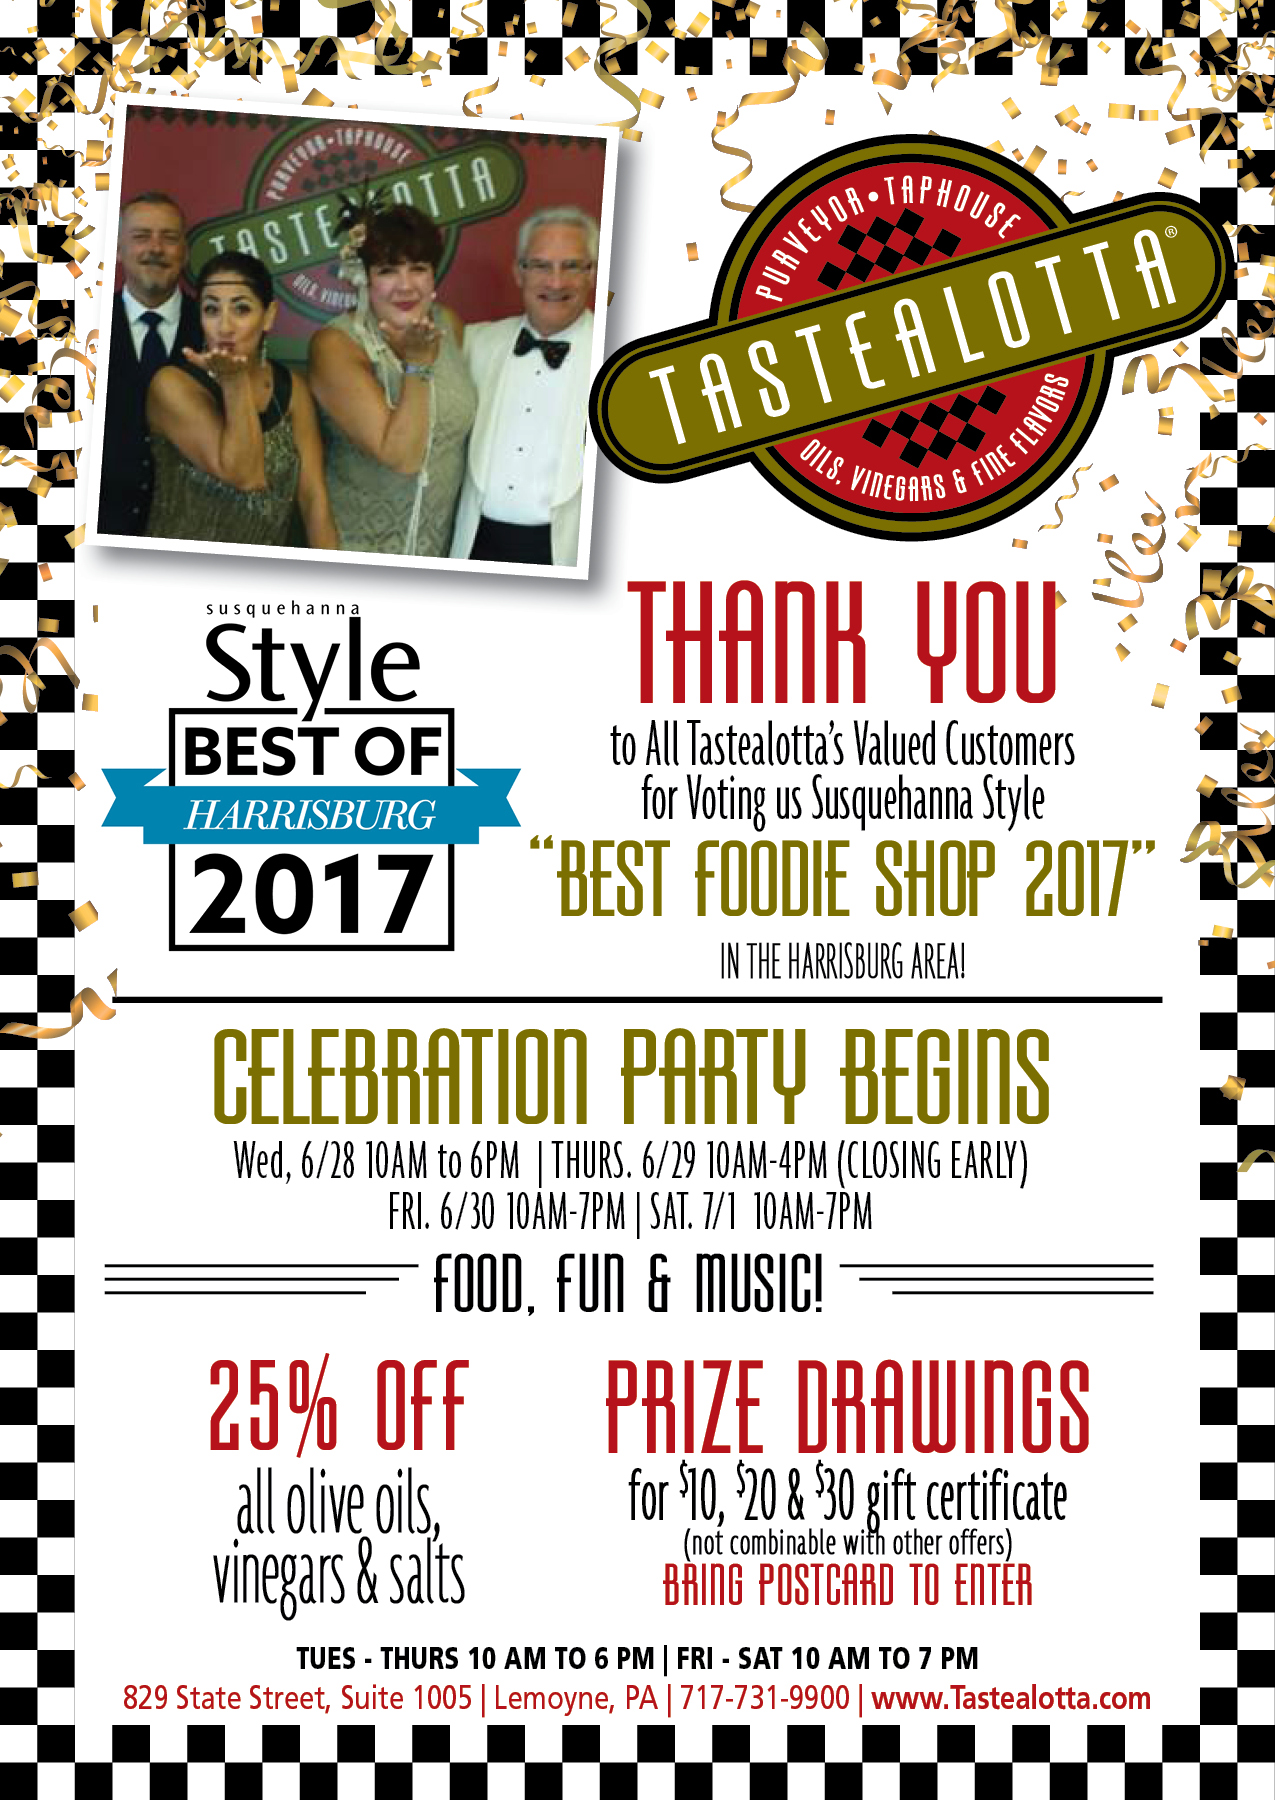 Tastealotta June 2017 PstCd (1)